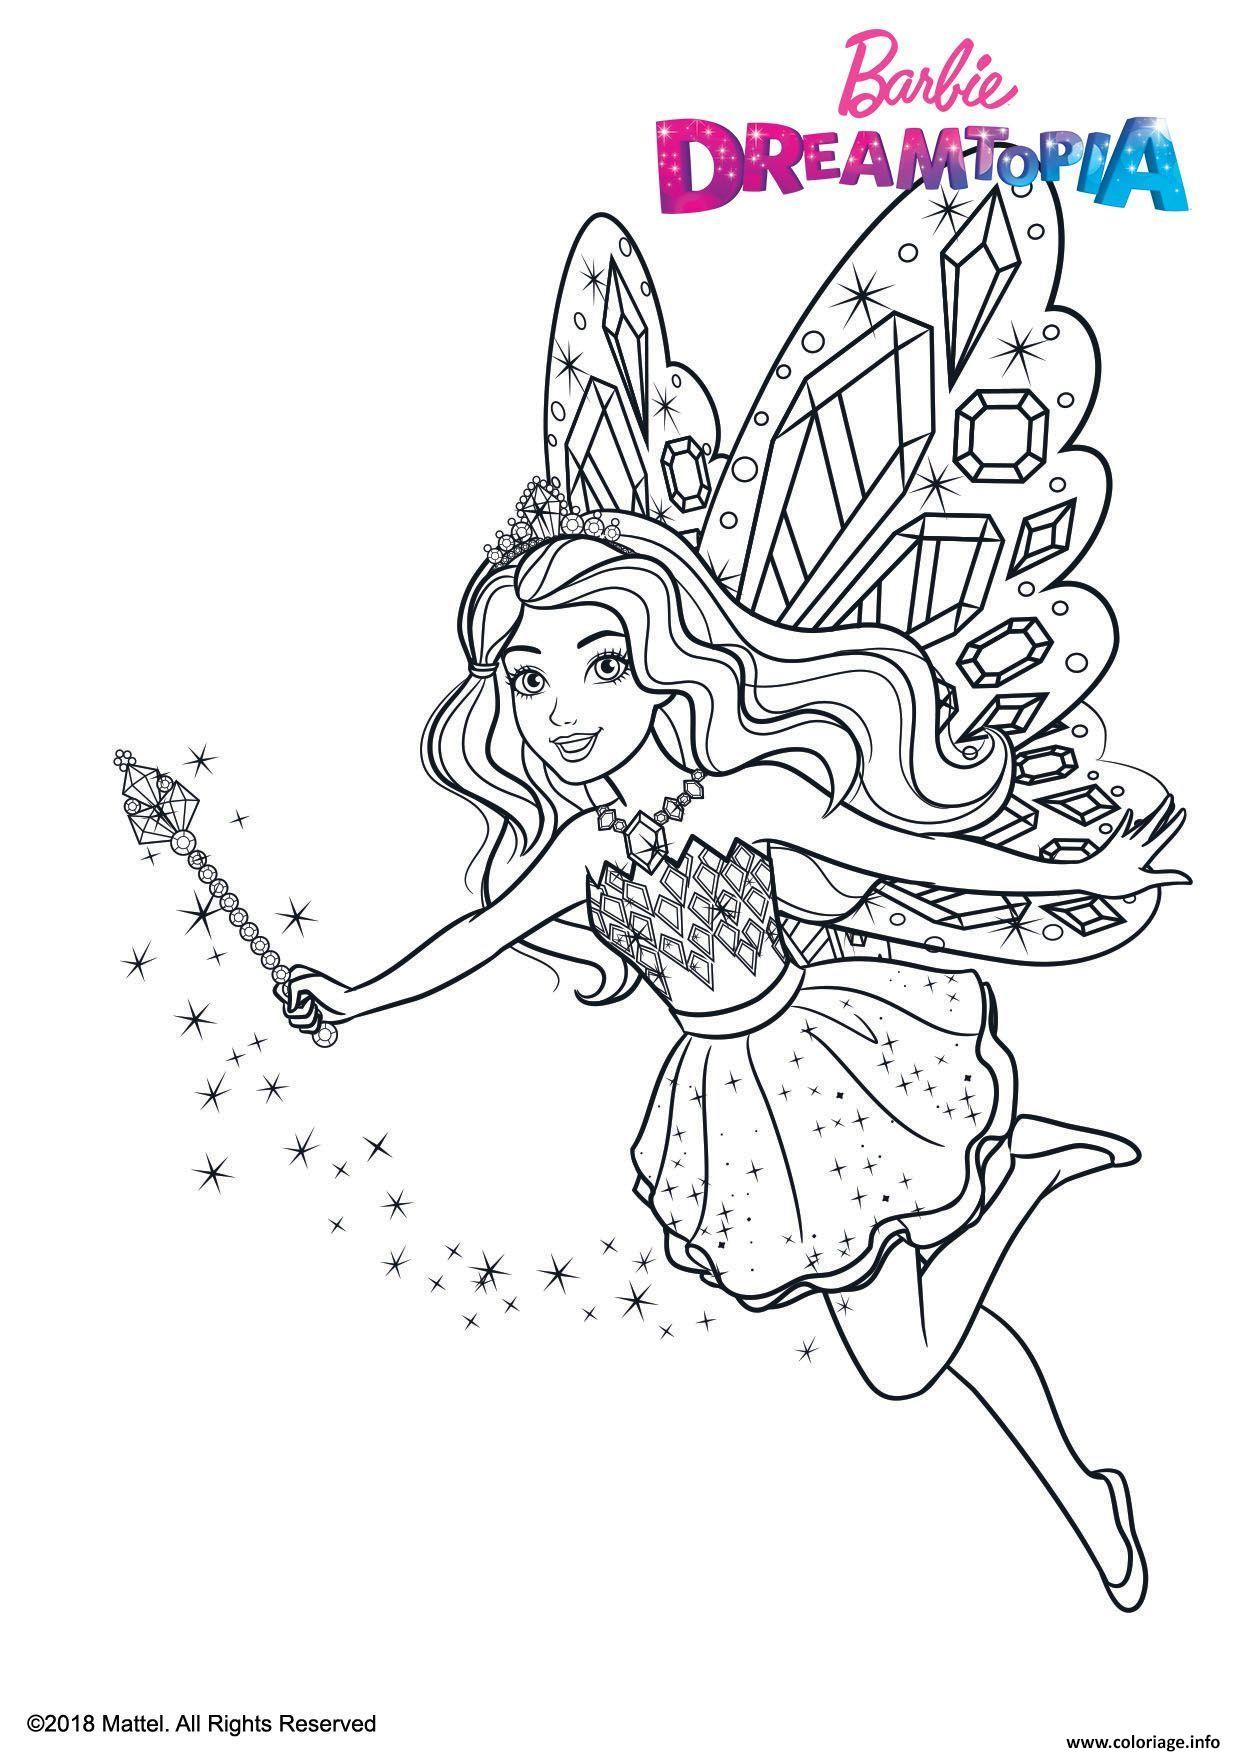 Coloriage Gulli Barbie Fee Paillettes Dessin